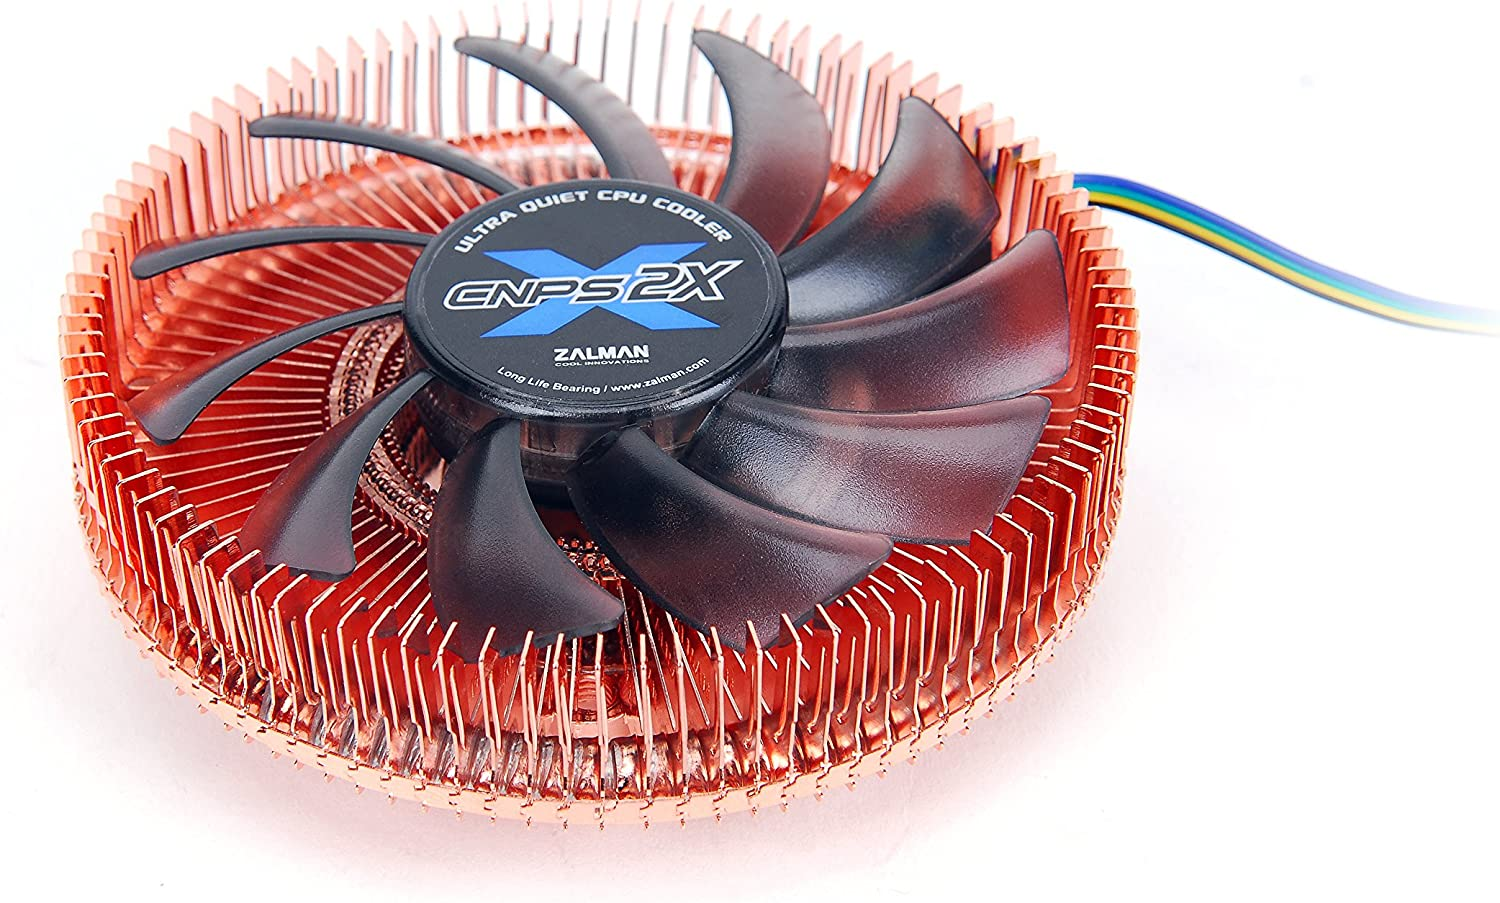 Zalman CPU Fan Cooling CNPS2X